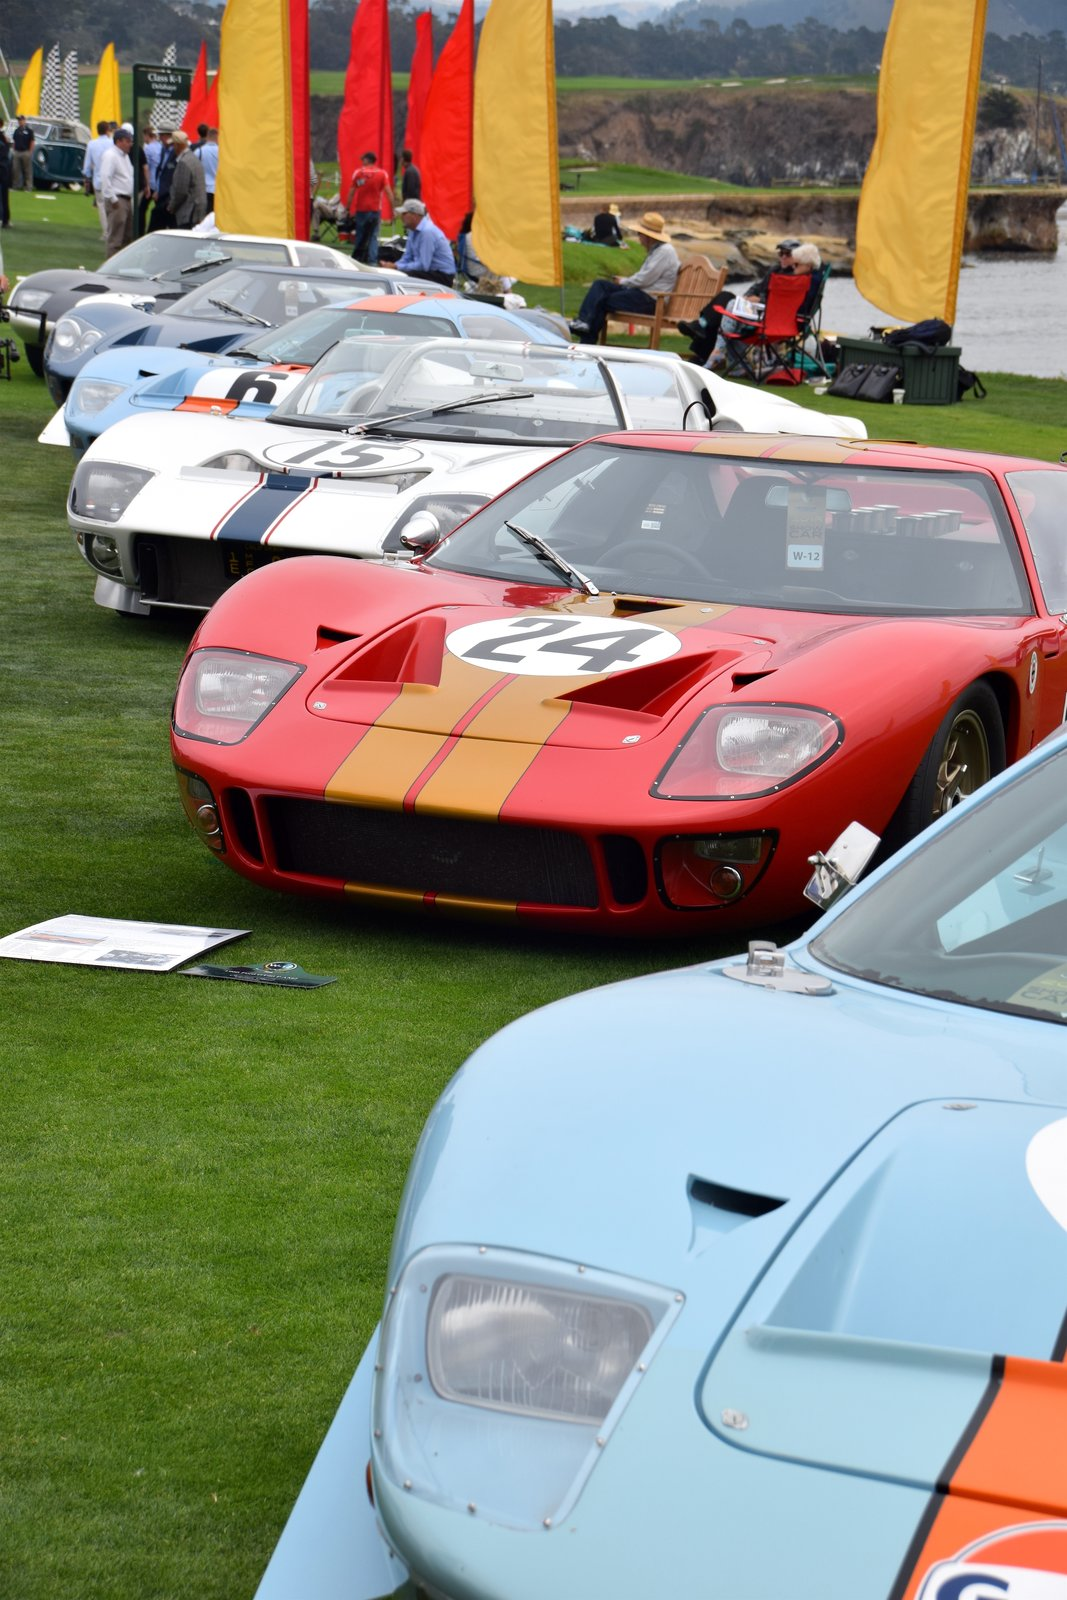 Lining the water on the 18th fairway of Pebble Beach Golf Links was a grouping of sporty race cars ranging from the '50s through the '70s—all of which had their own distinctive character and action-filled histories. The blue and orange car in the front is a 1968 Ford GT40 Mirage, which came from Sandy, Utah. During its time, it marked the first win for a sports car in the blue and orange Gulf livery, which has now become legendary. It also was used as a camera car in the film Le Mans by Steve McQueen.  Photo 2 of 10 in A Day at the Pebble Beach Concours d'Elegance Car Show